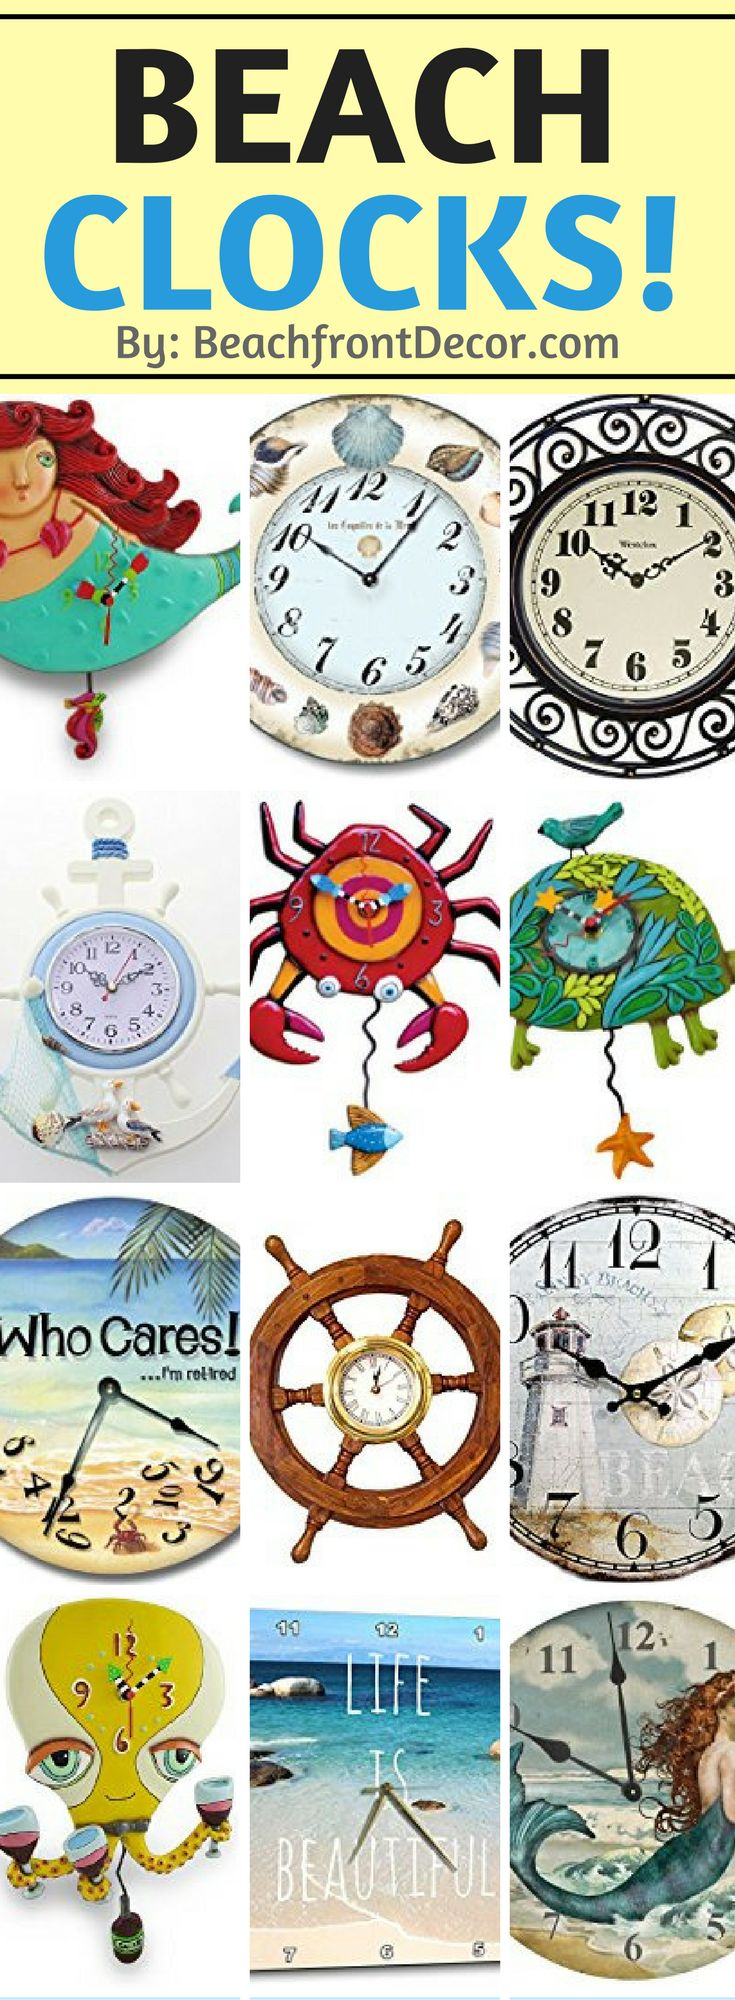 Check out all of our nautical, coastal, tropical, and beach themed clocks for your beach home!  Beach clocks can be perfect for wall decor and to of course tell time.